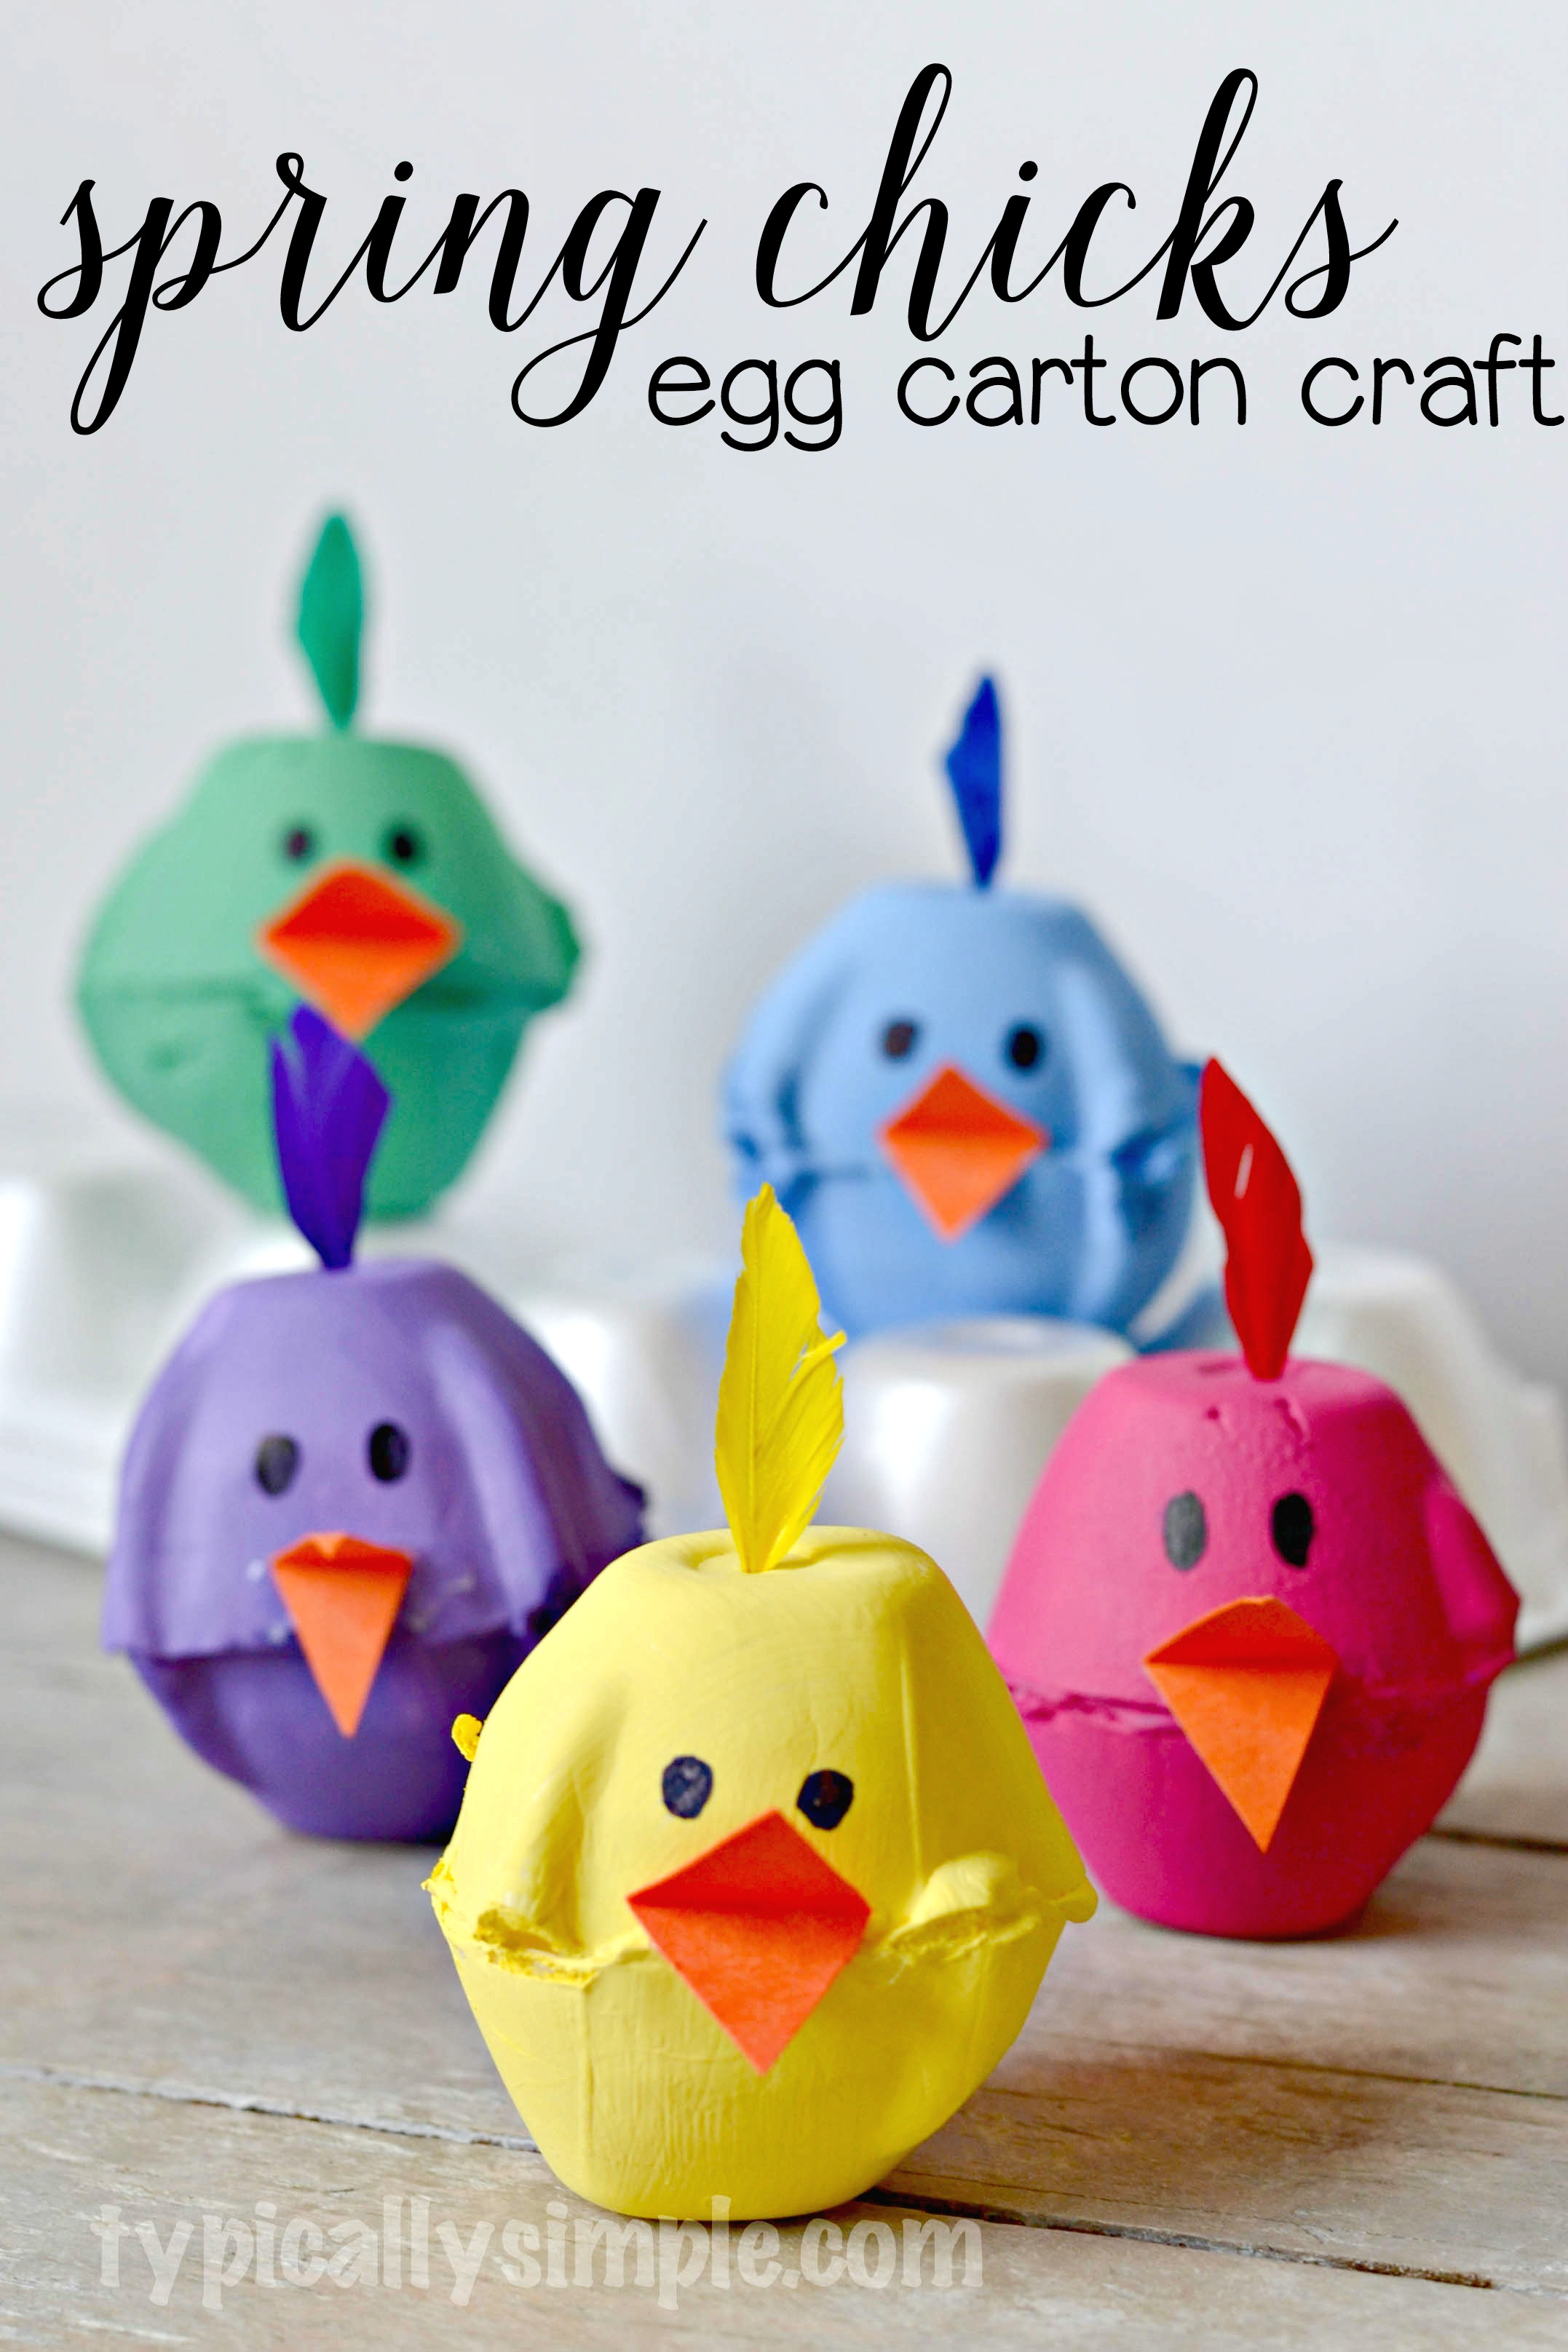 40 easter crafts for kids fun diy ideas for kid friendly easter 40 easter crafts for kids fun diy ideas for kid friendly easter activities country living negle